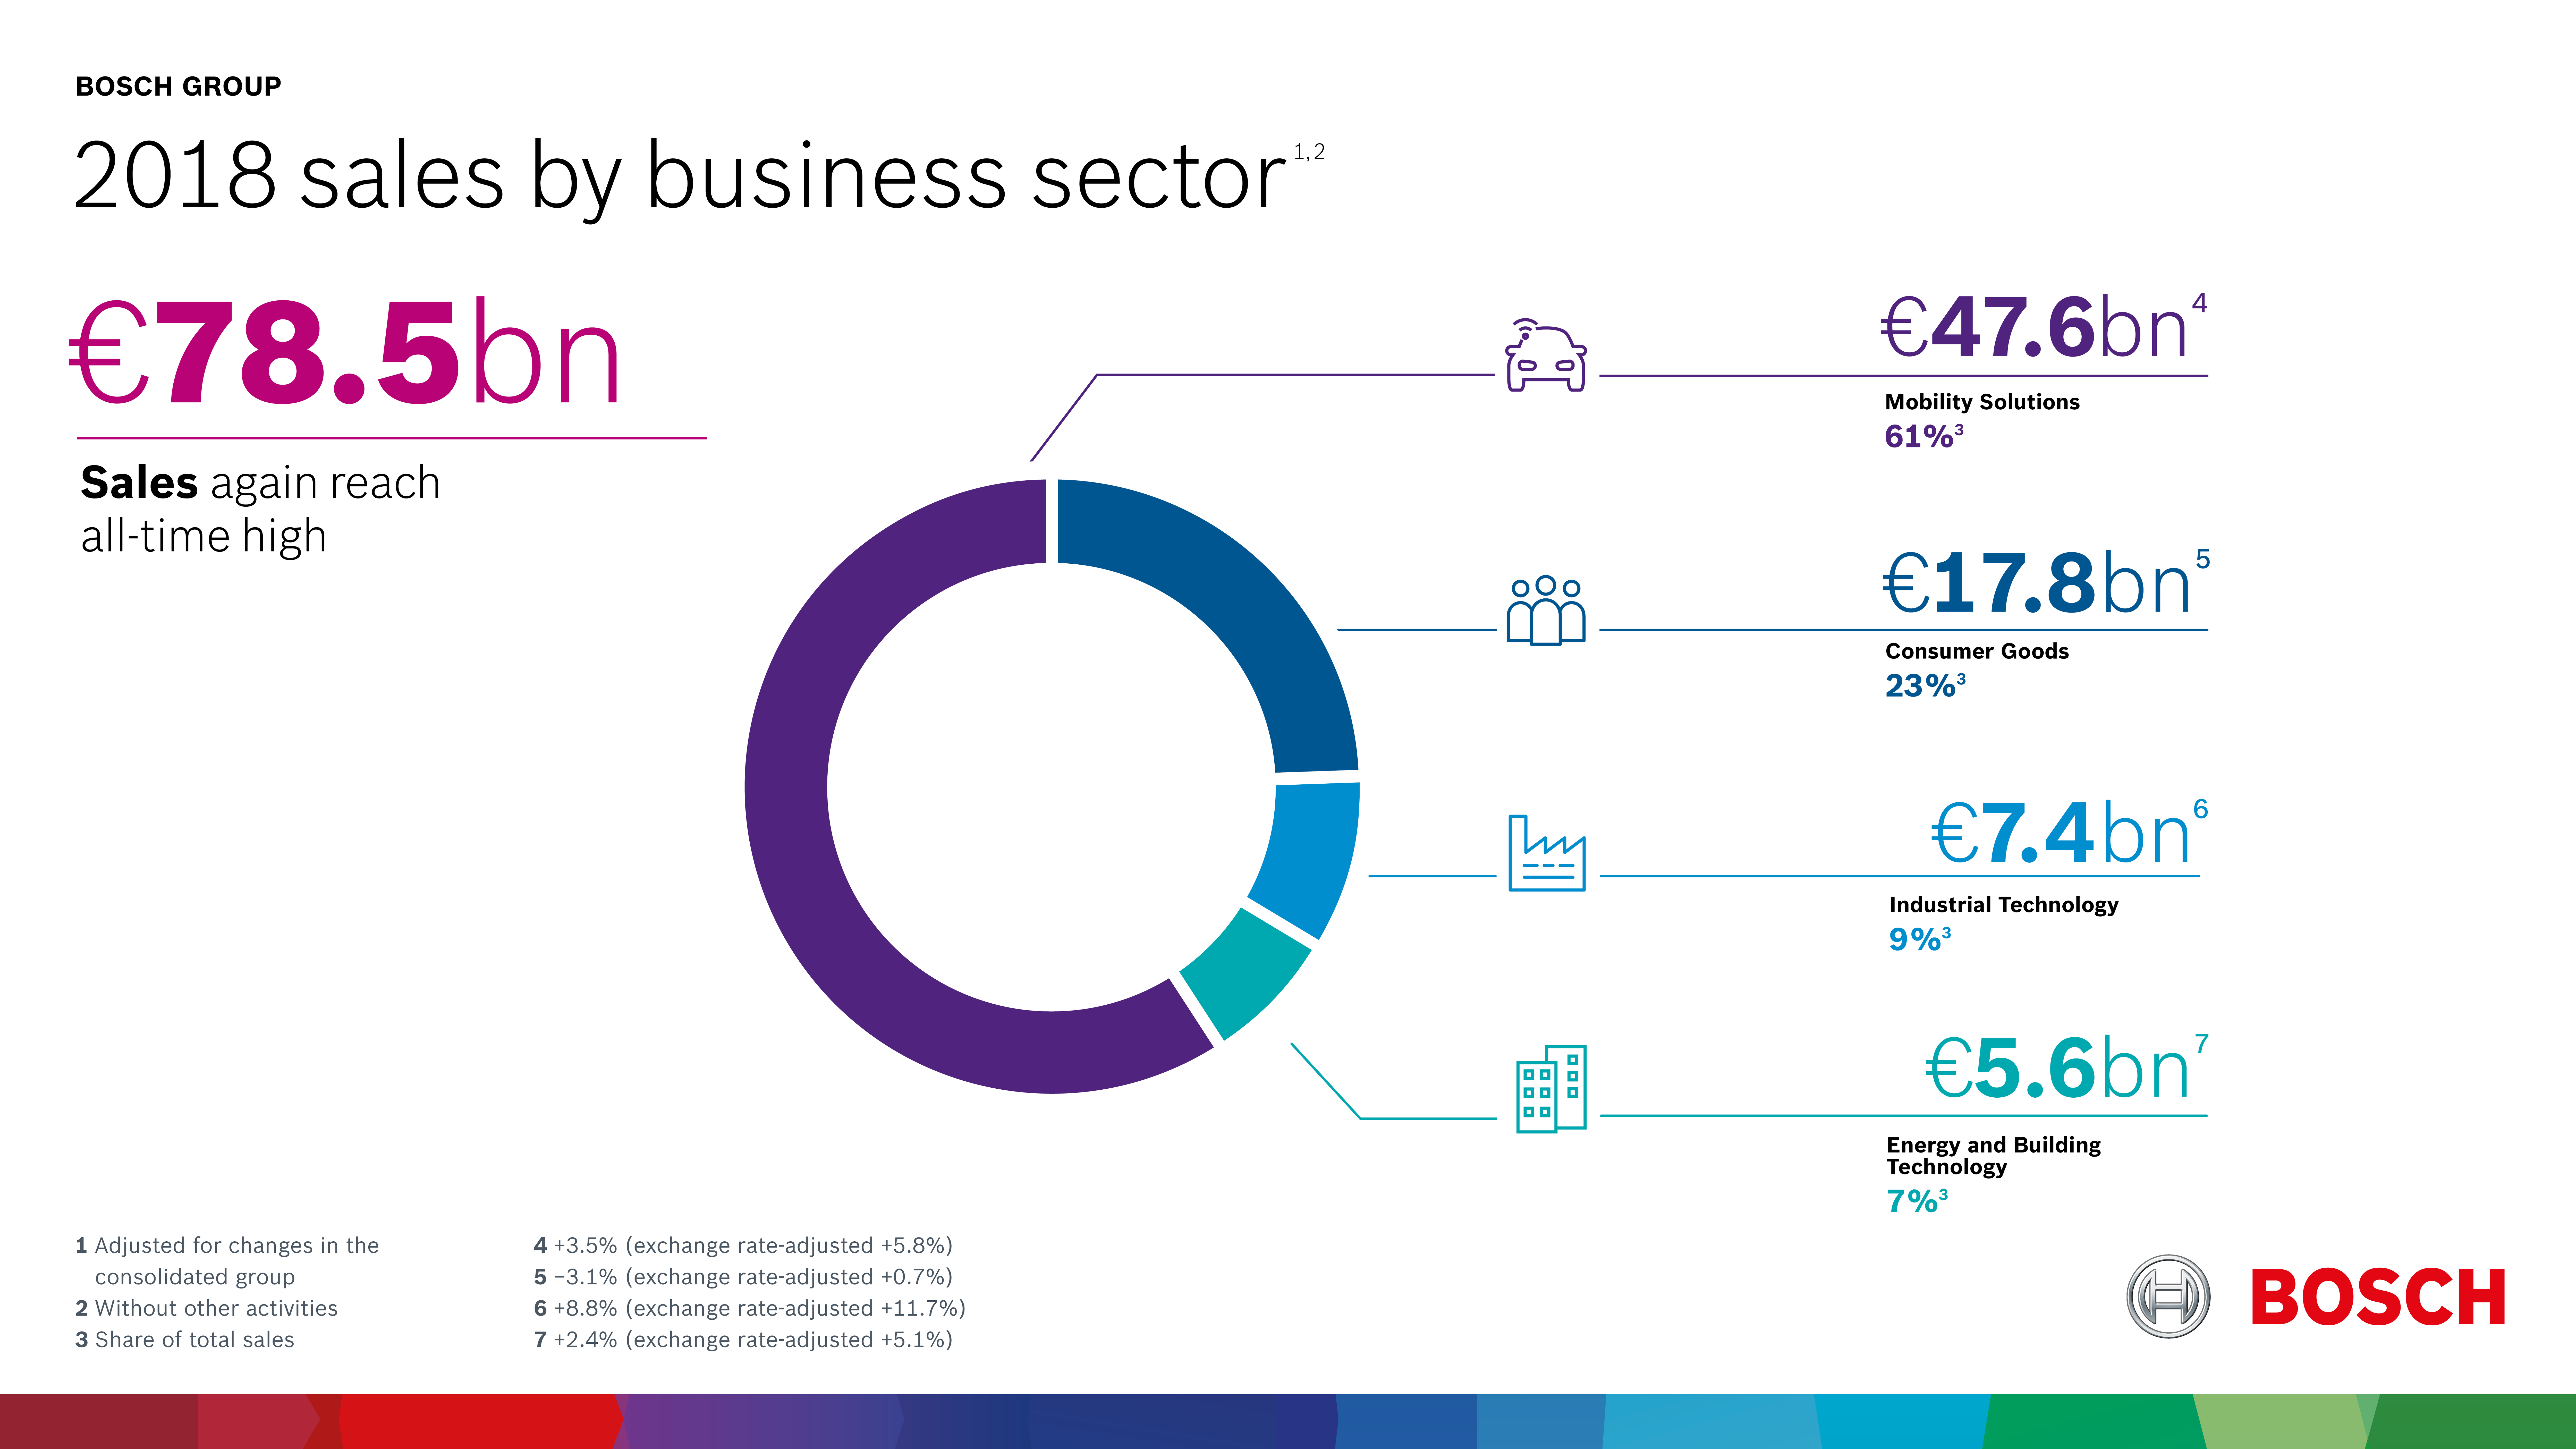 2018 sales by business sector